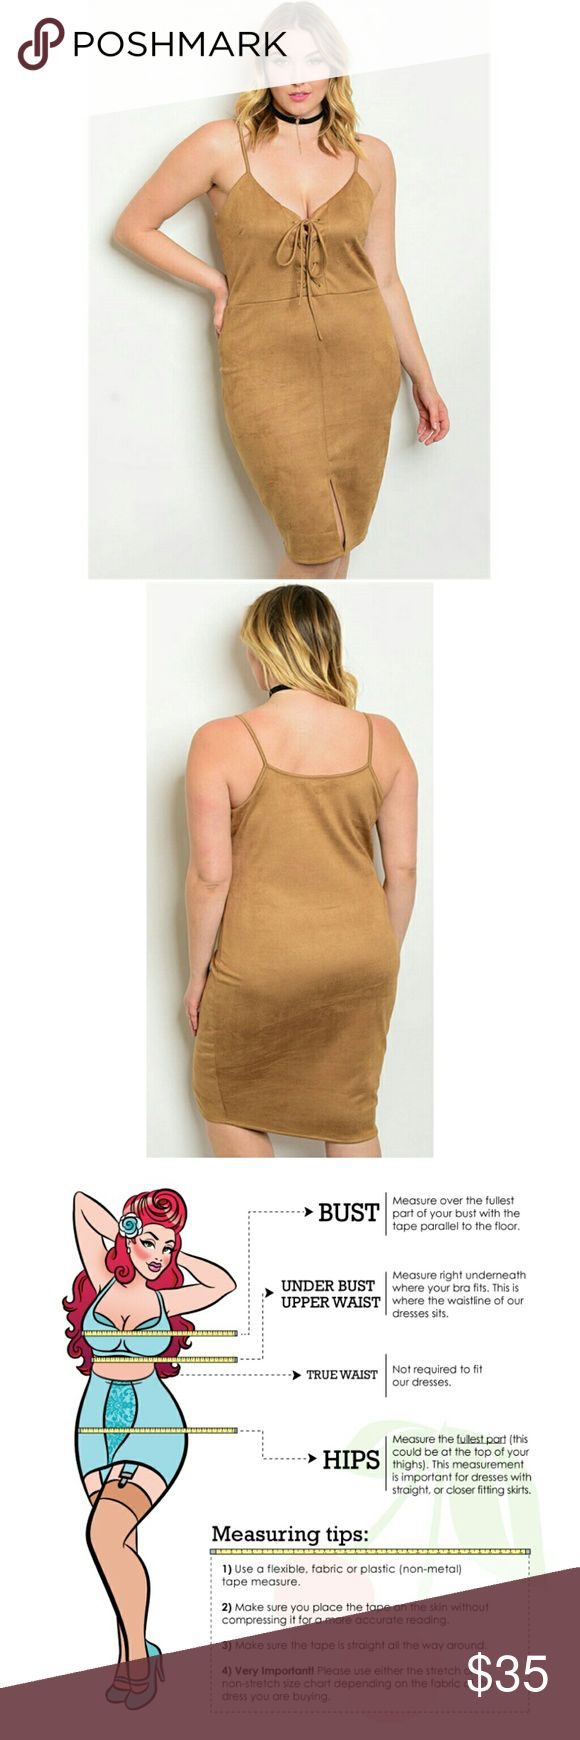 "(Plus) Curvy Boho Unique Faux Suede Dress Plus size spaghetti strap tie front faux suede bodycon dress. Camel Tan. Great to wear alone with heels. Supercute with cowboy boots! Fab layering piece. Country: USA Fabric Content: 96% POLYESTER 4% SPANDEX Size Scale: 1XL-2XL-3XL 1XL. L: 42"" B: 38"" W: 36"" BohoBeauRoseBoutique Dresses Midi"